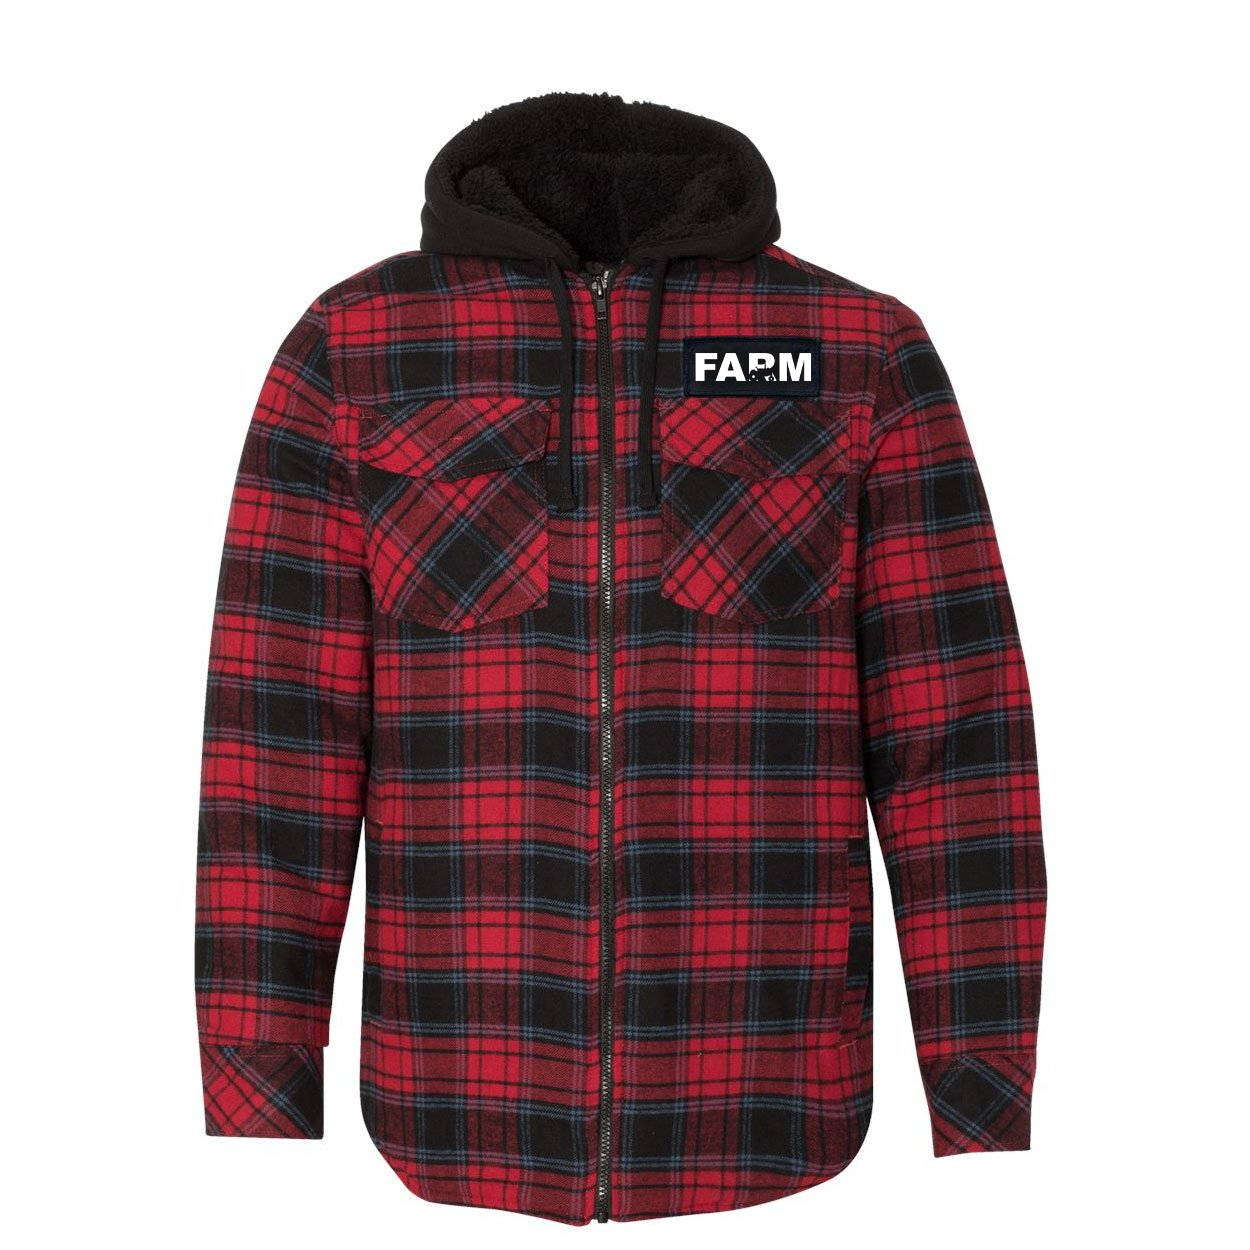 Farm Tractor Logo Classic Unisex Full Zip Woven Patch Hooded Flannel Jacket Red/Black Buffalo (White Logo)